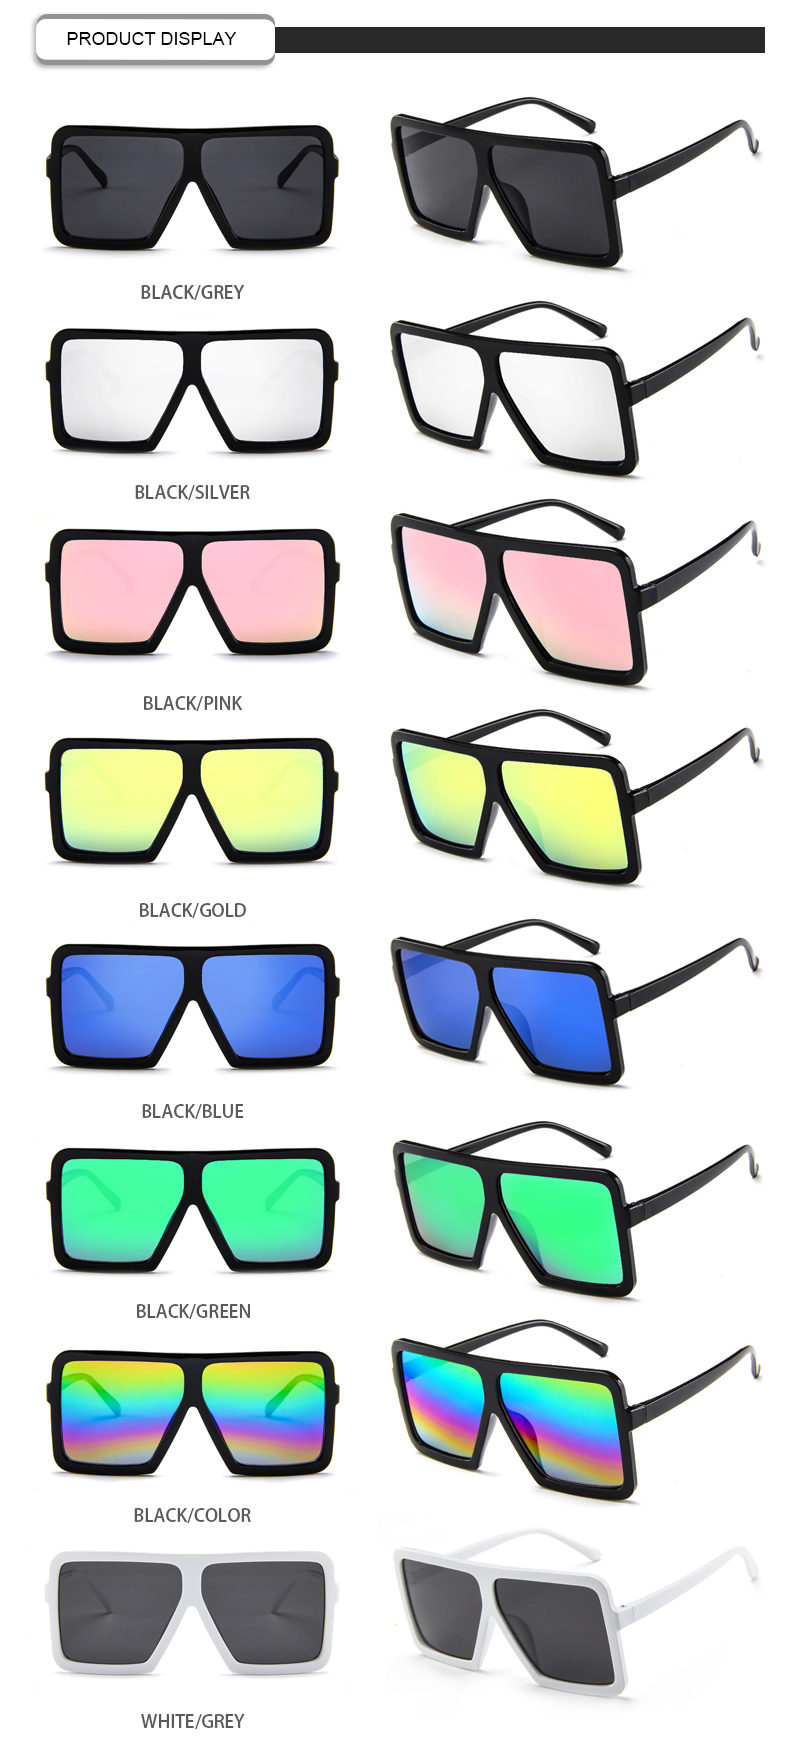 Fuqian glasses for sale online ask online for lady-13